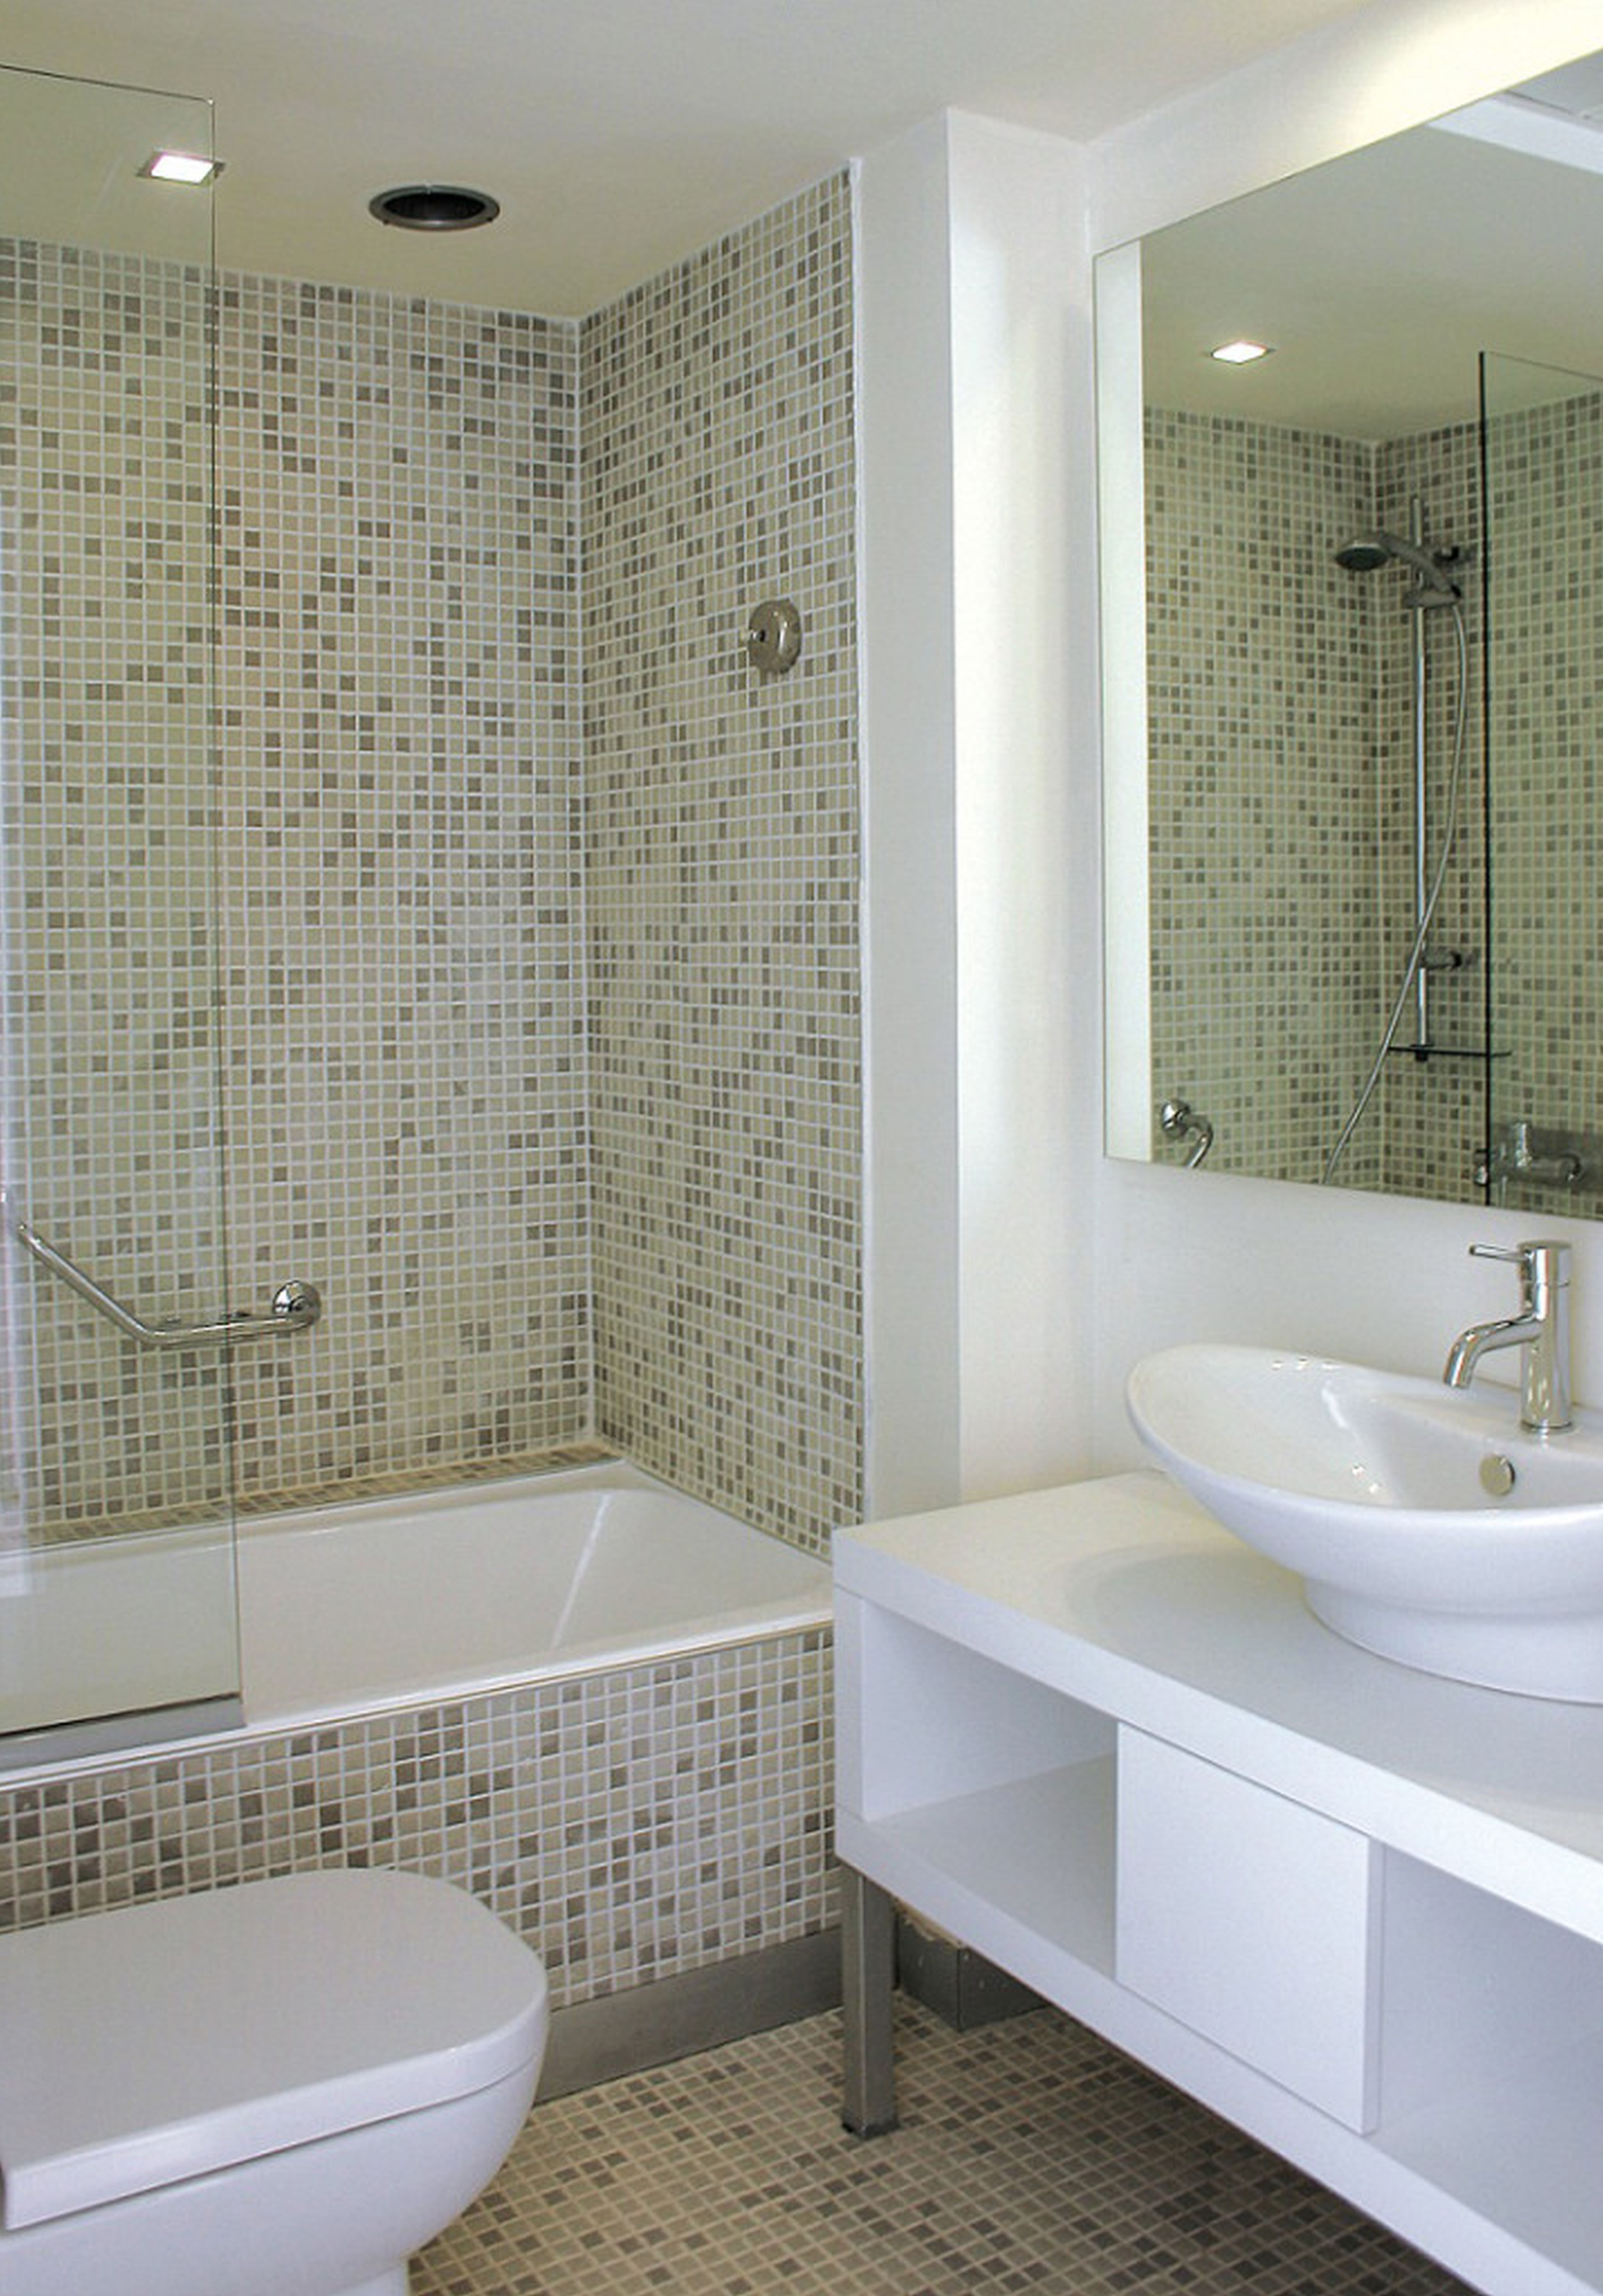 Small Bathroom Space Ideas - HomesFeed on Small Space Small Bathroom Ideas  id=77543